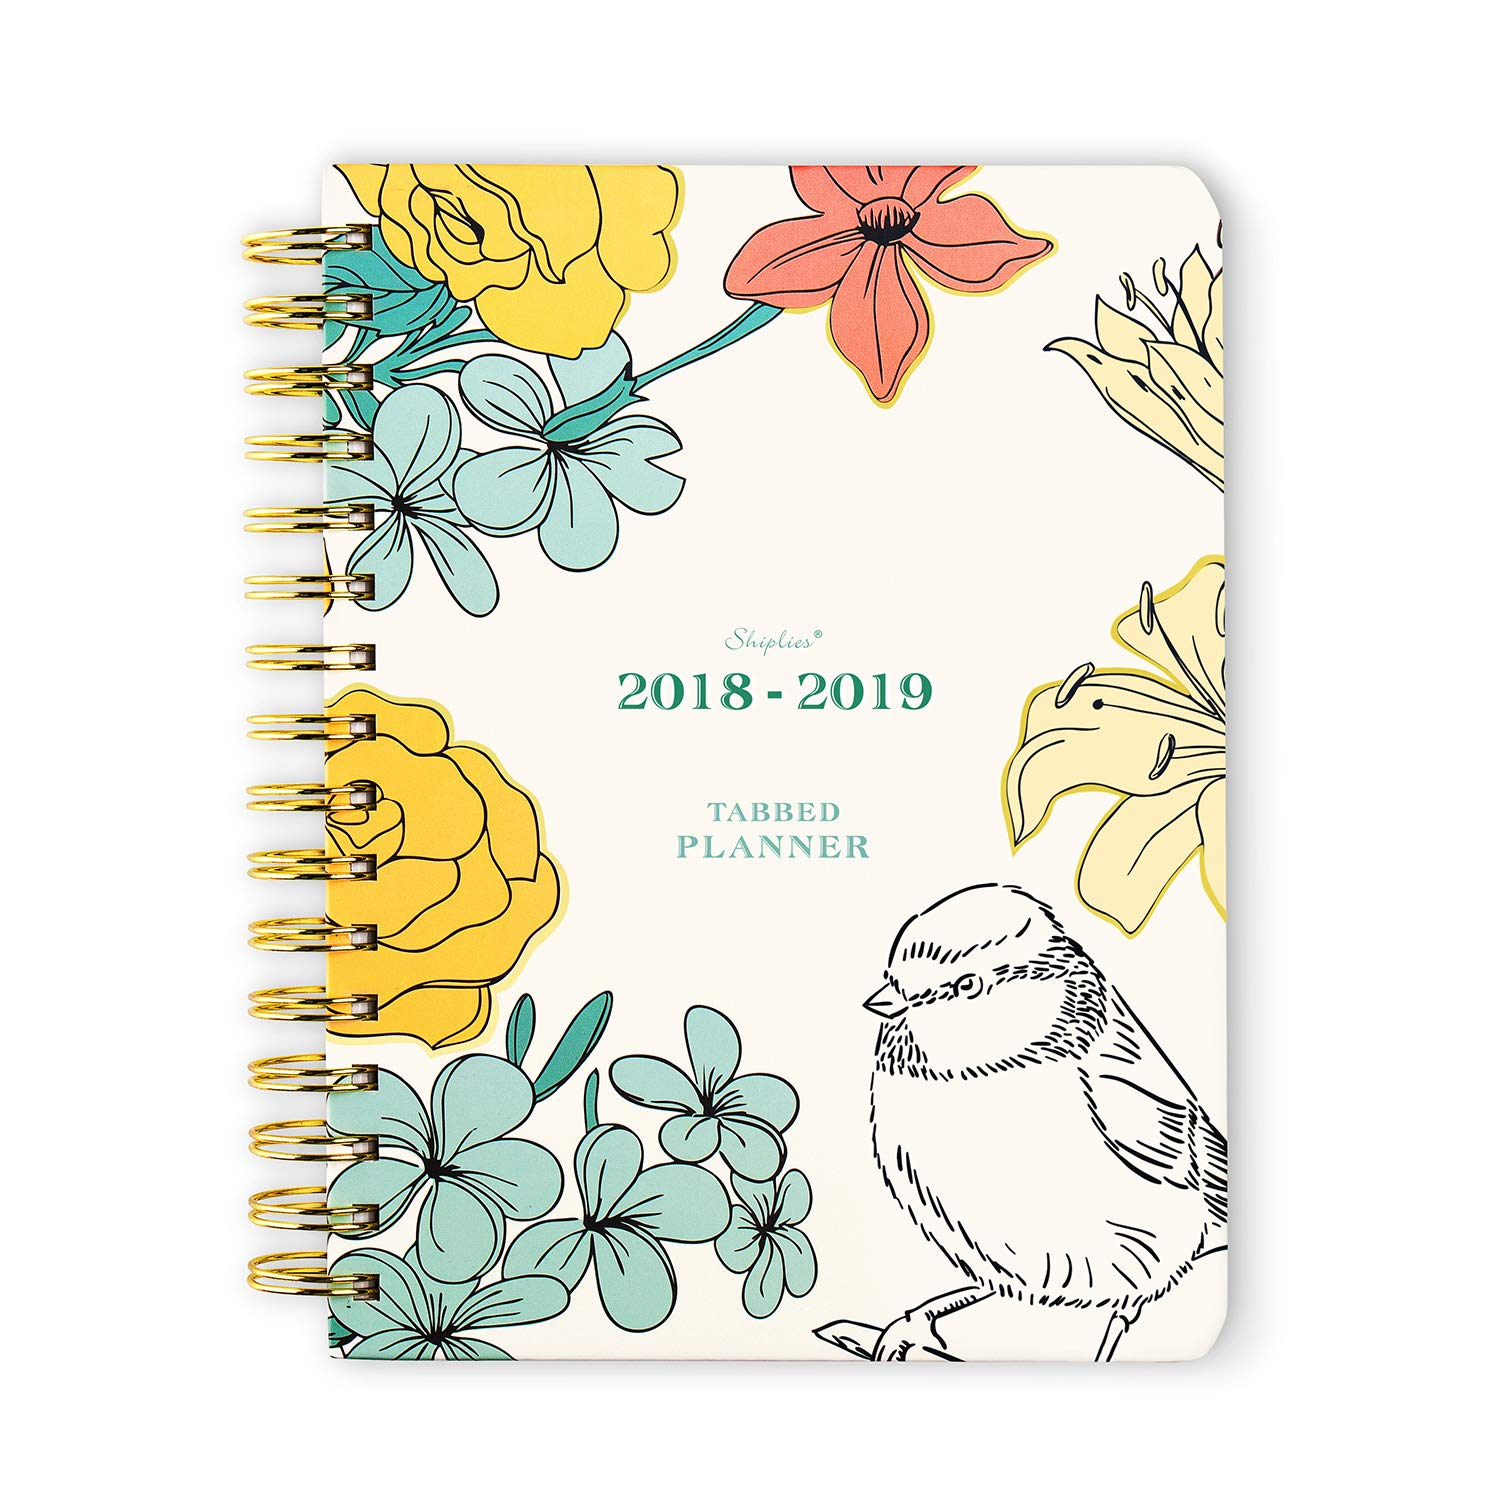 Hard Cover 2018-2019 Academic Year Monthly Weekly Tabbed Planner, Agenda, Personal Organizer, Twin-Wire Binding 6.8'' x 8.8'' by Shiplies